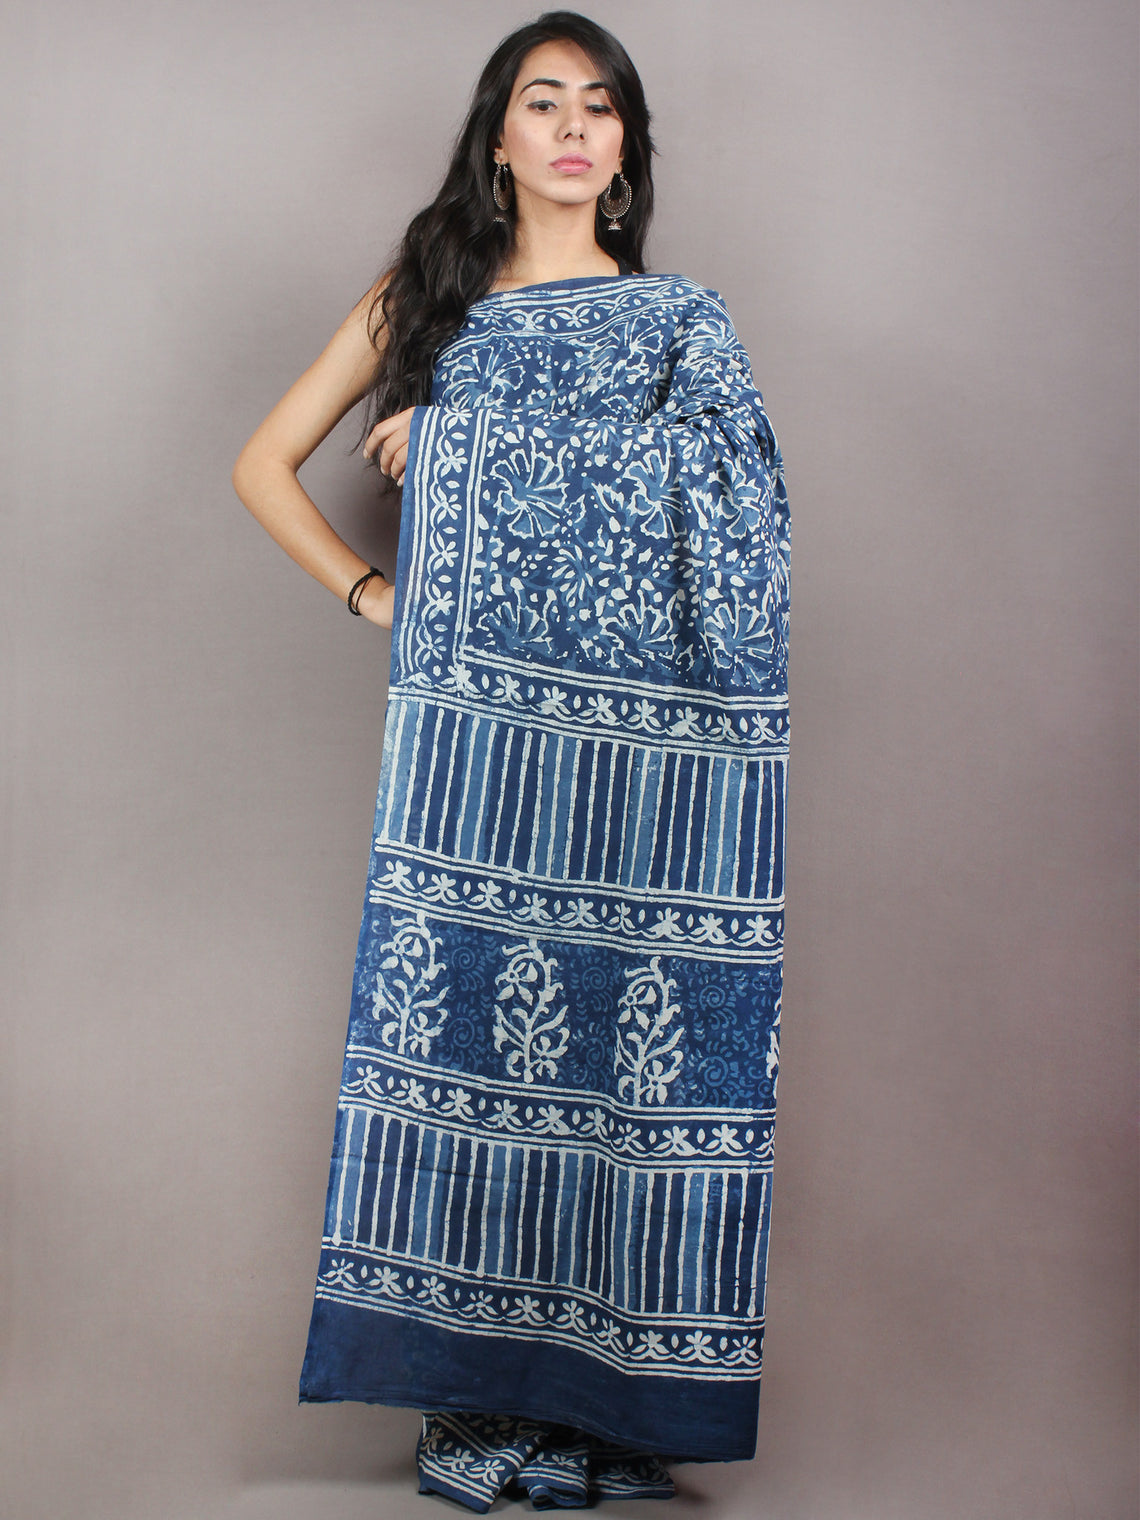 Indigo Cotton Hand Block Printed & Painted Saree - S03170740